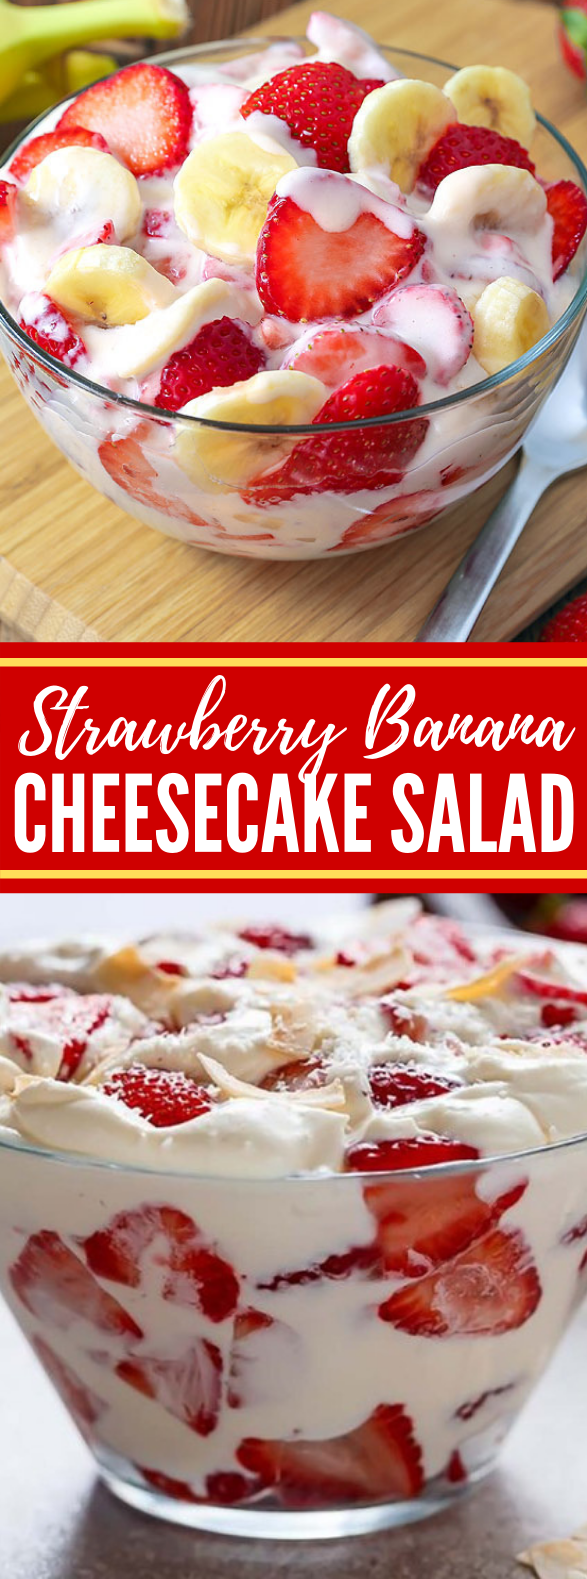 Strawberry Banana Cheesecake Salad #desserts #potluck